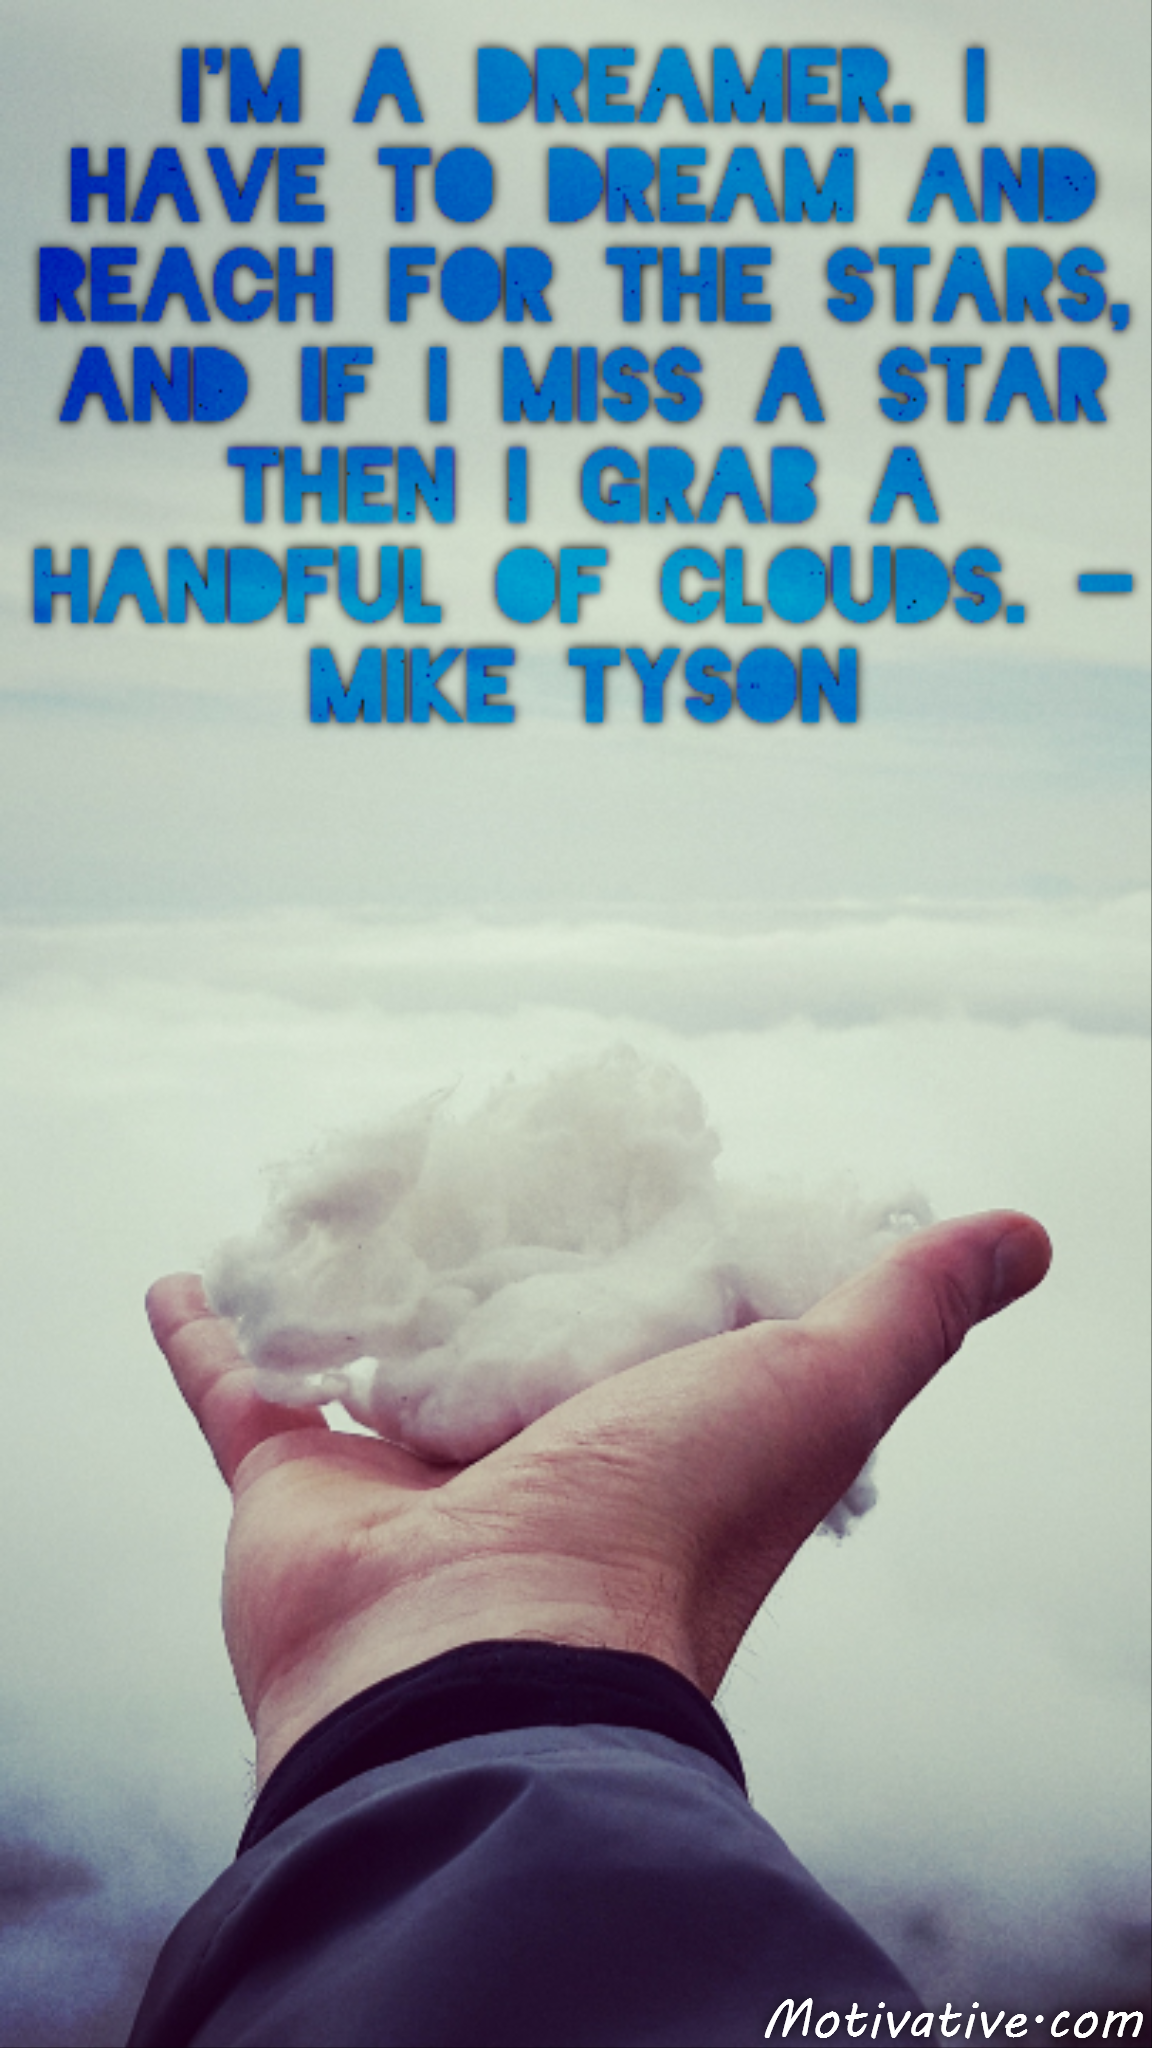 I'm a dreamer. I have to dream and reach for the stars, and if I miss a star then I grab a handful of clouds. – Mike Tyson